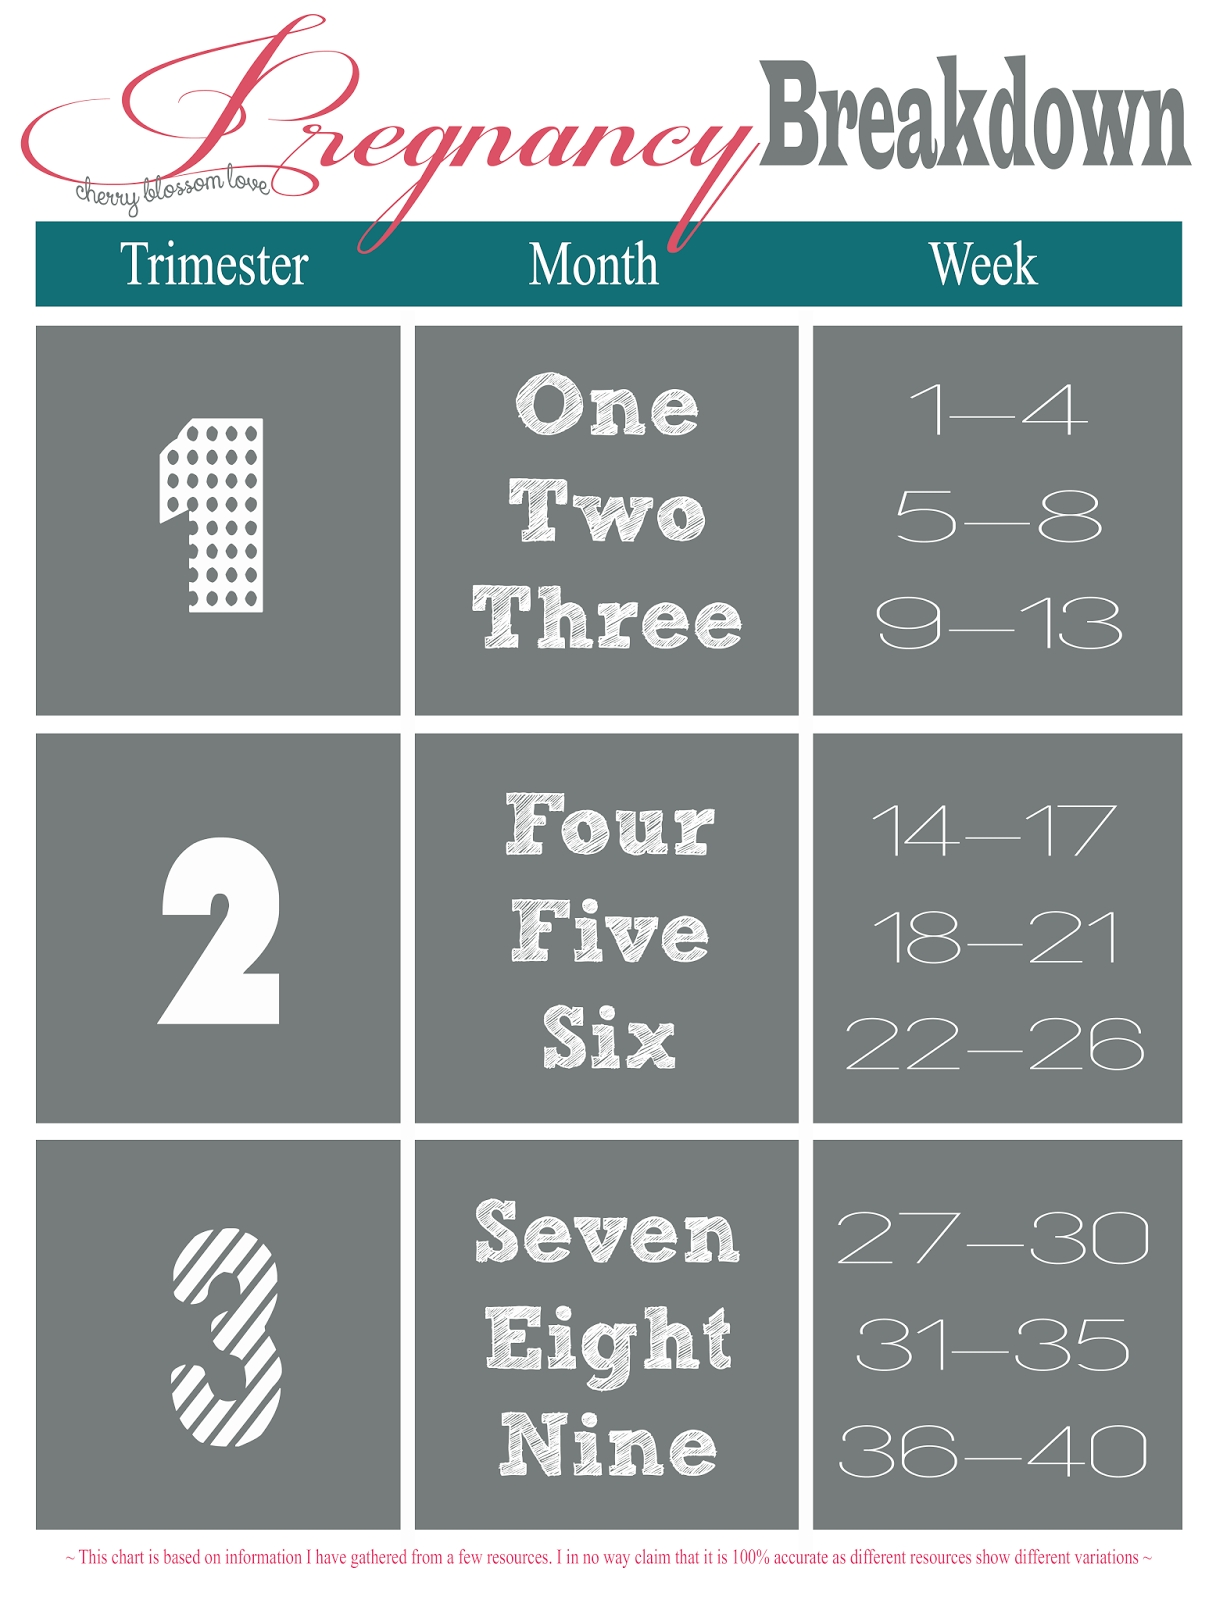 Pregnancy Breakdown In Trimesters, Months And Weeks. | Pregnancy  Pregnancy Calendar Weeks To Months